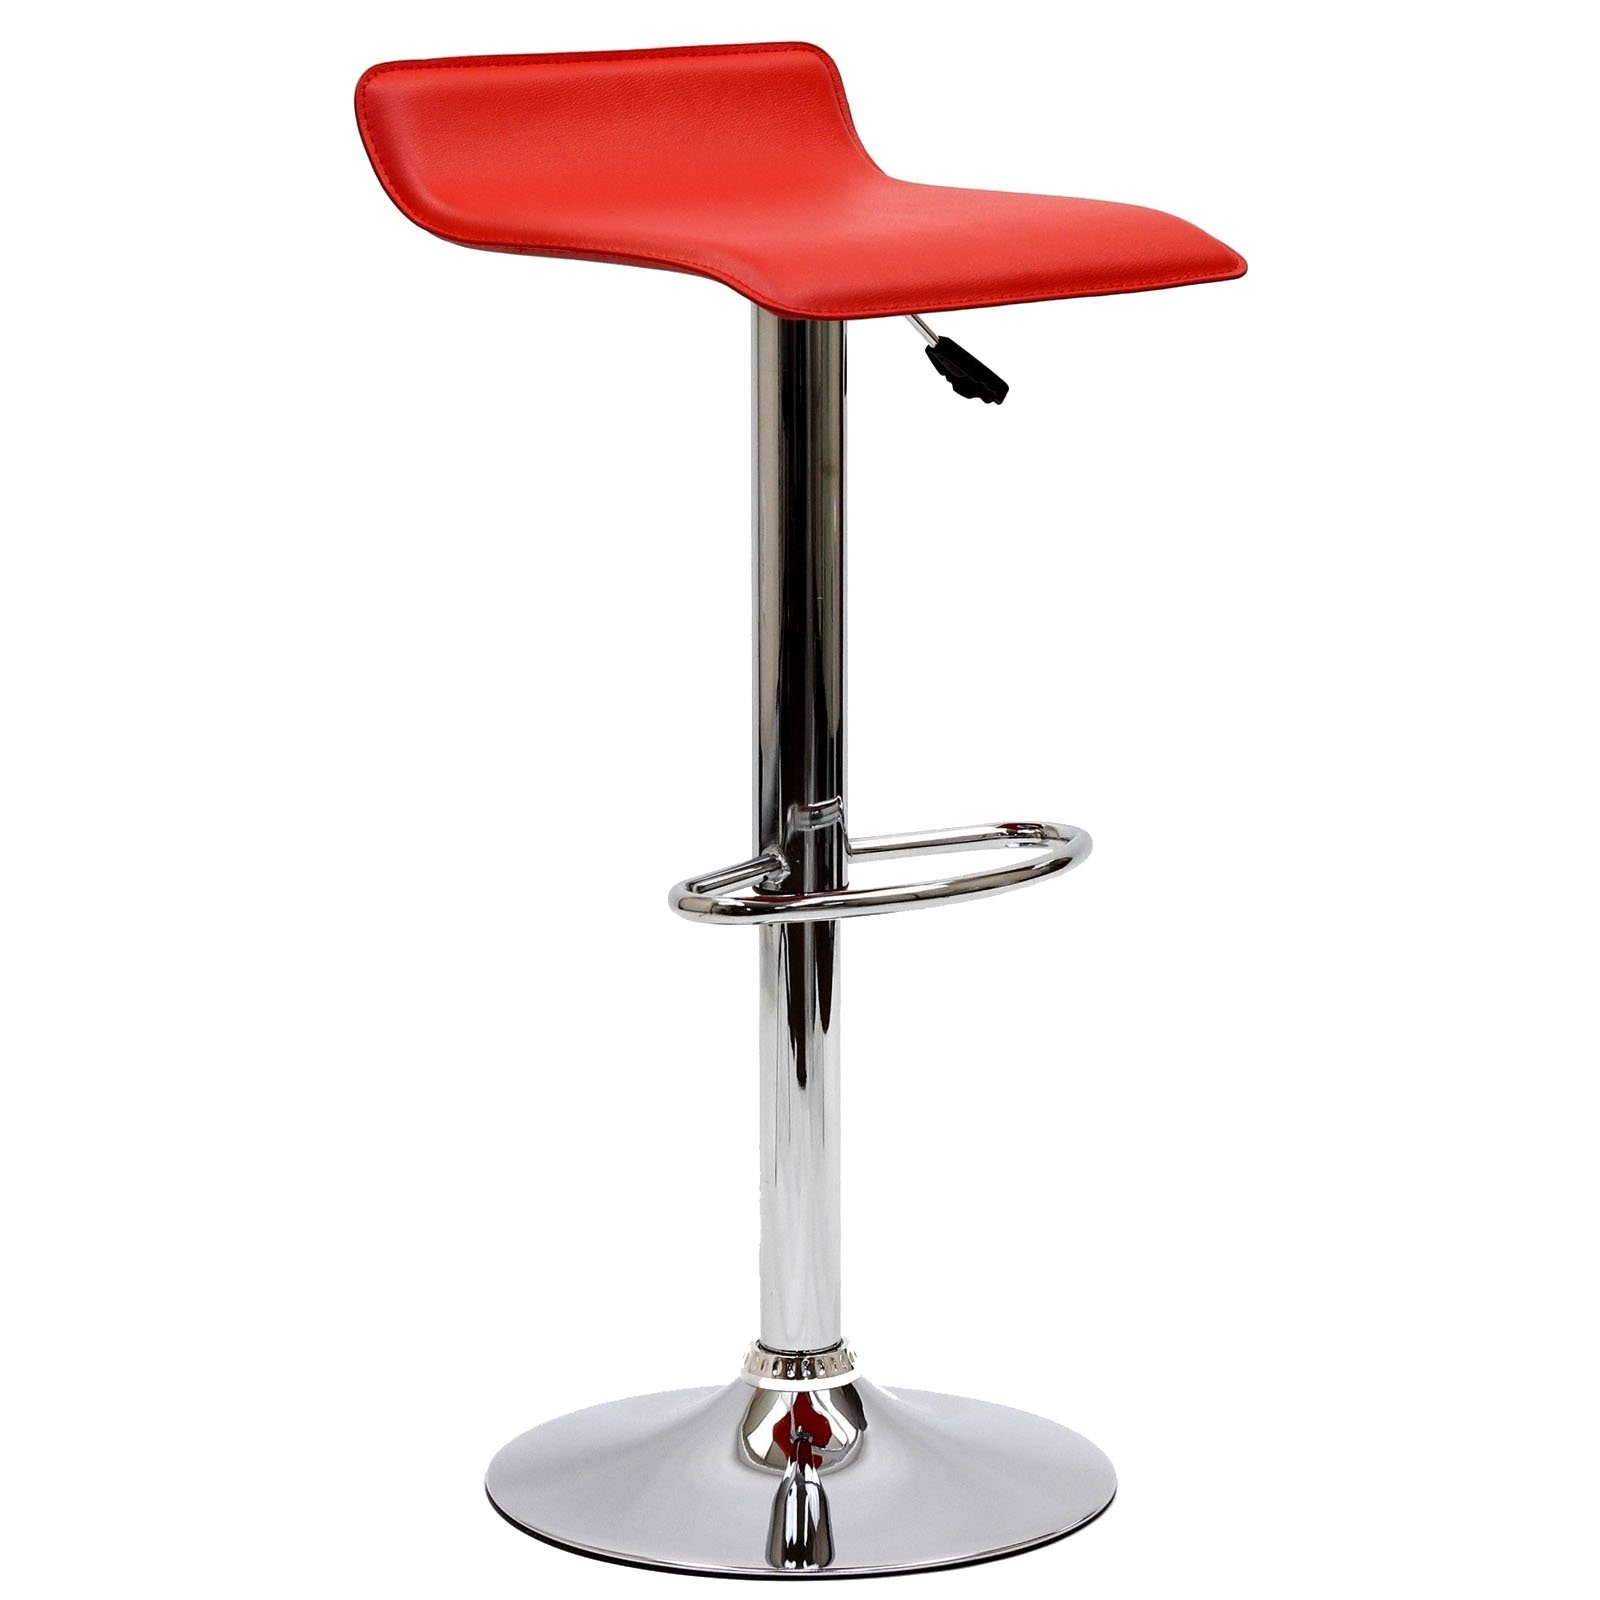 Modway Gloria Retro Modern Faux Leather Bar Stools in Red by Modway (Image #2)